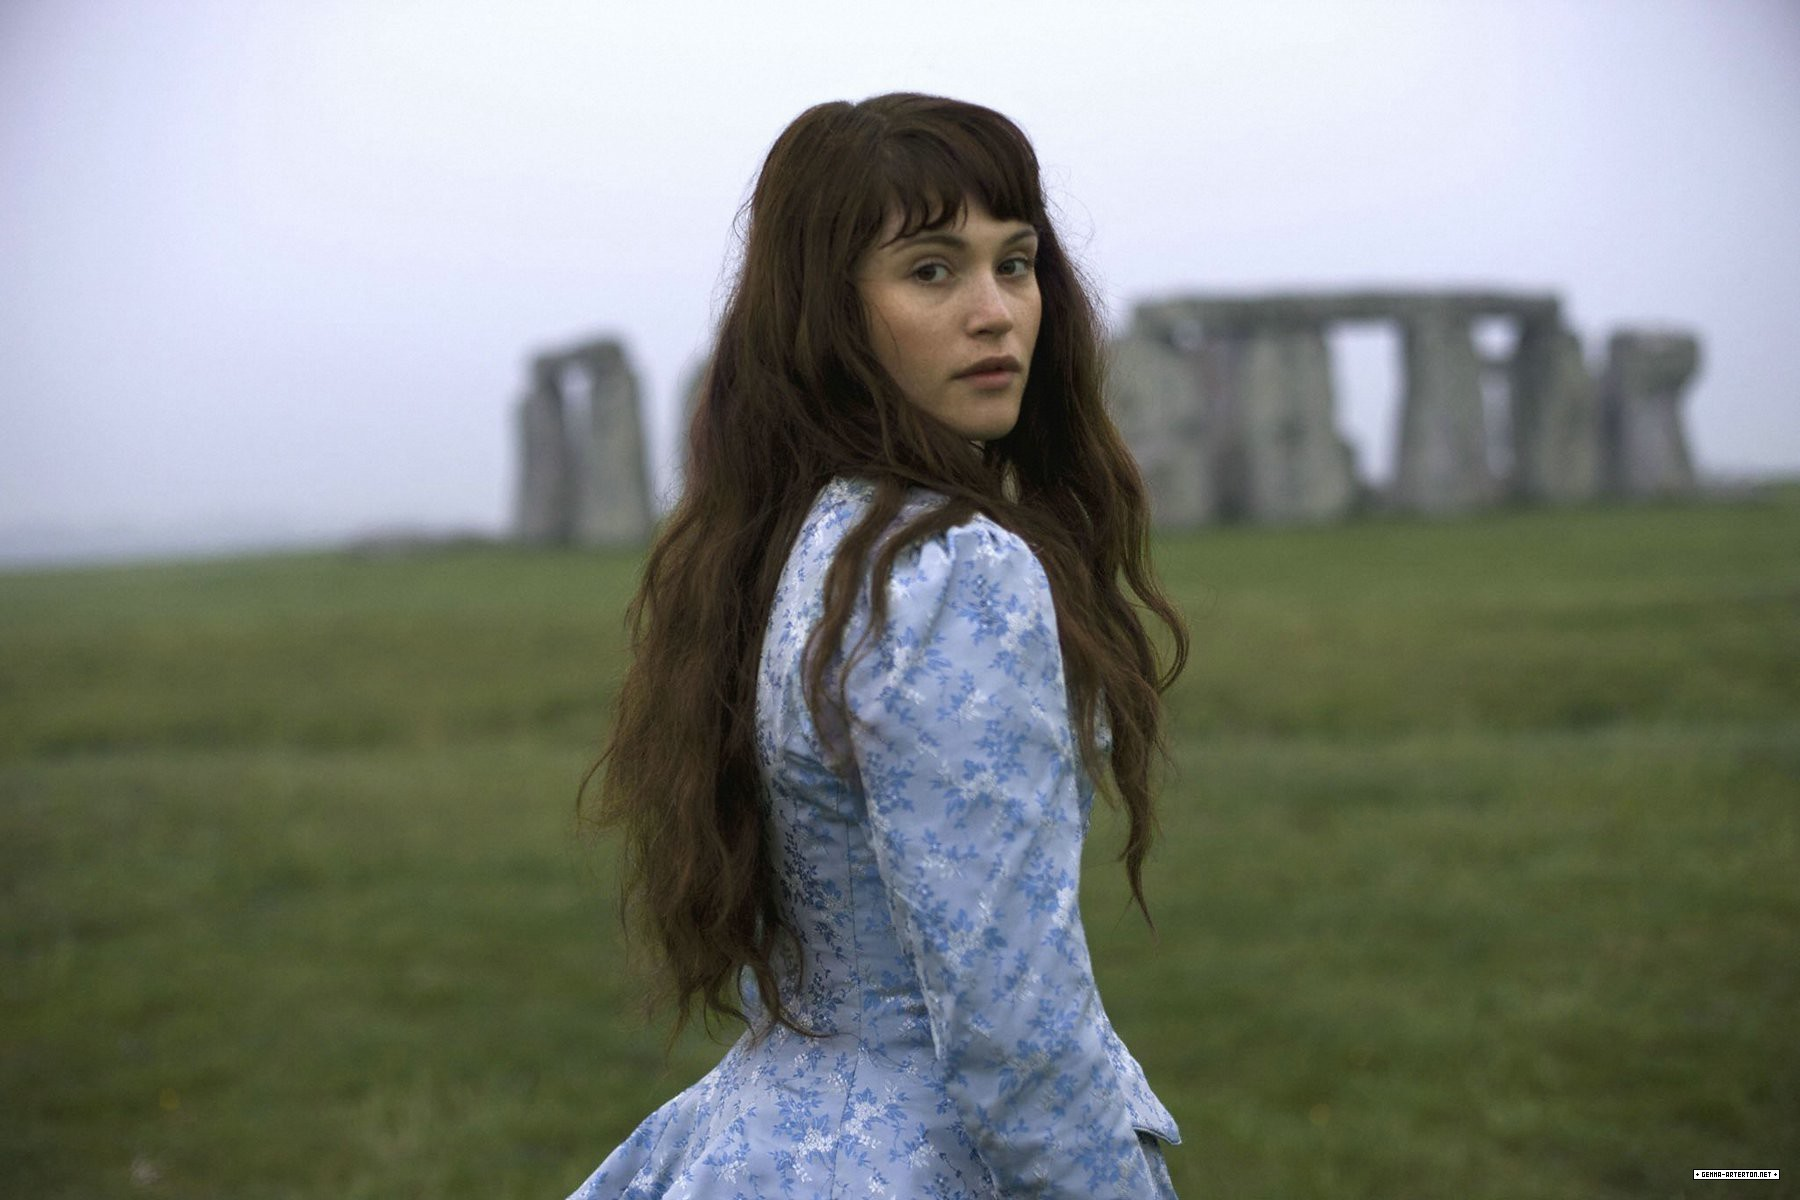 an analysis of the topic of the victorian era in the novel tess of the durbervilles Introduction hardy began tess of the d'urbervilles in 1888-89 and the atlantic monthly called tess hardy's best novel the victorian era when hardy lived.